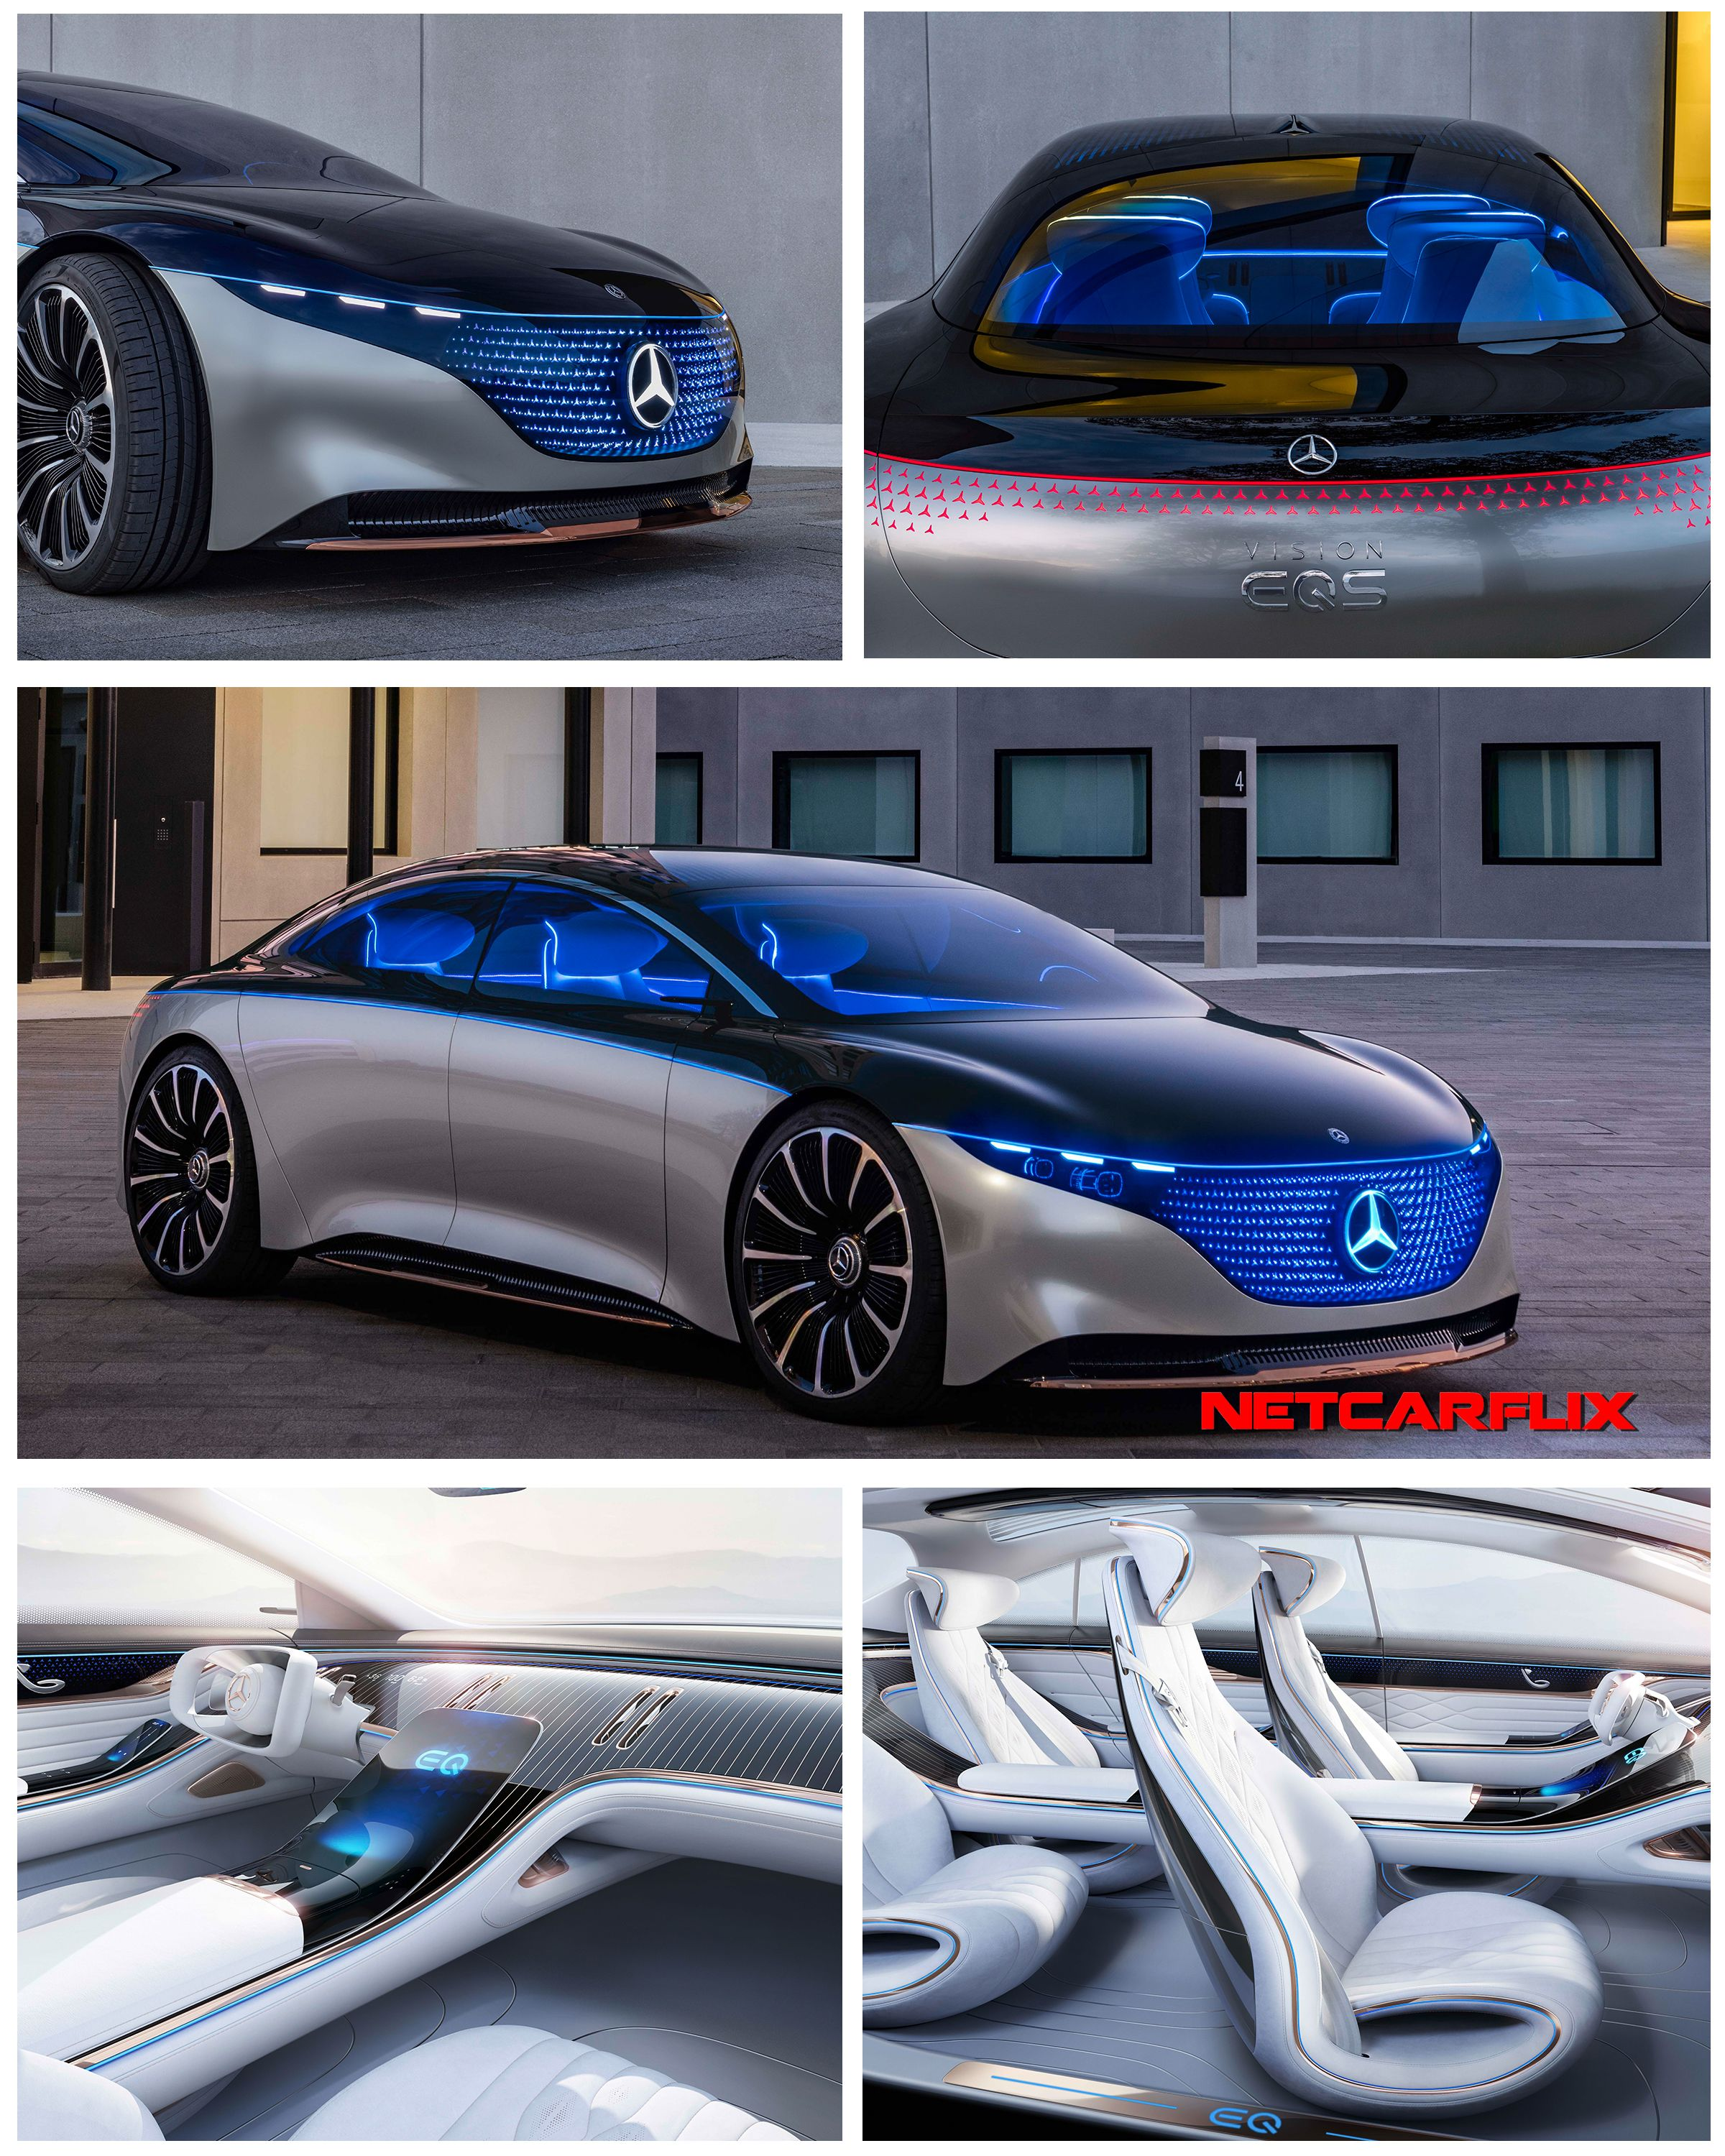 Photo of 2019 Mercedes-Benz Vision EQS Concept | DailyRevs.com